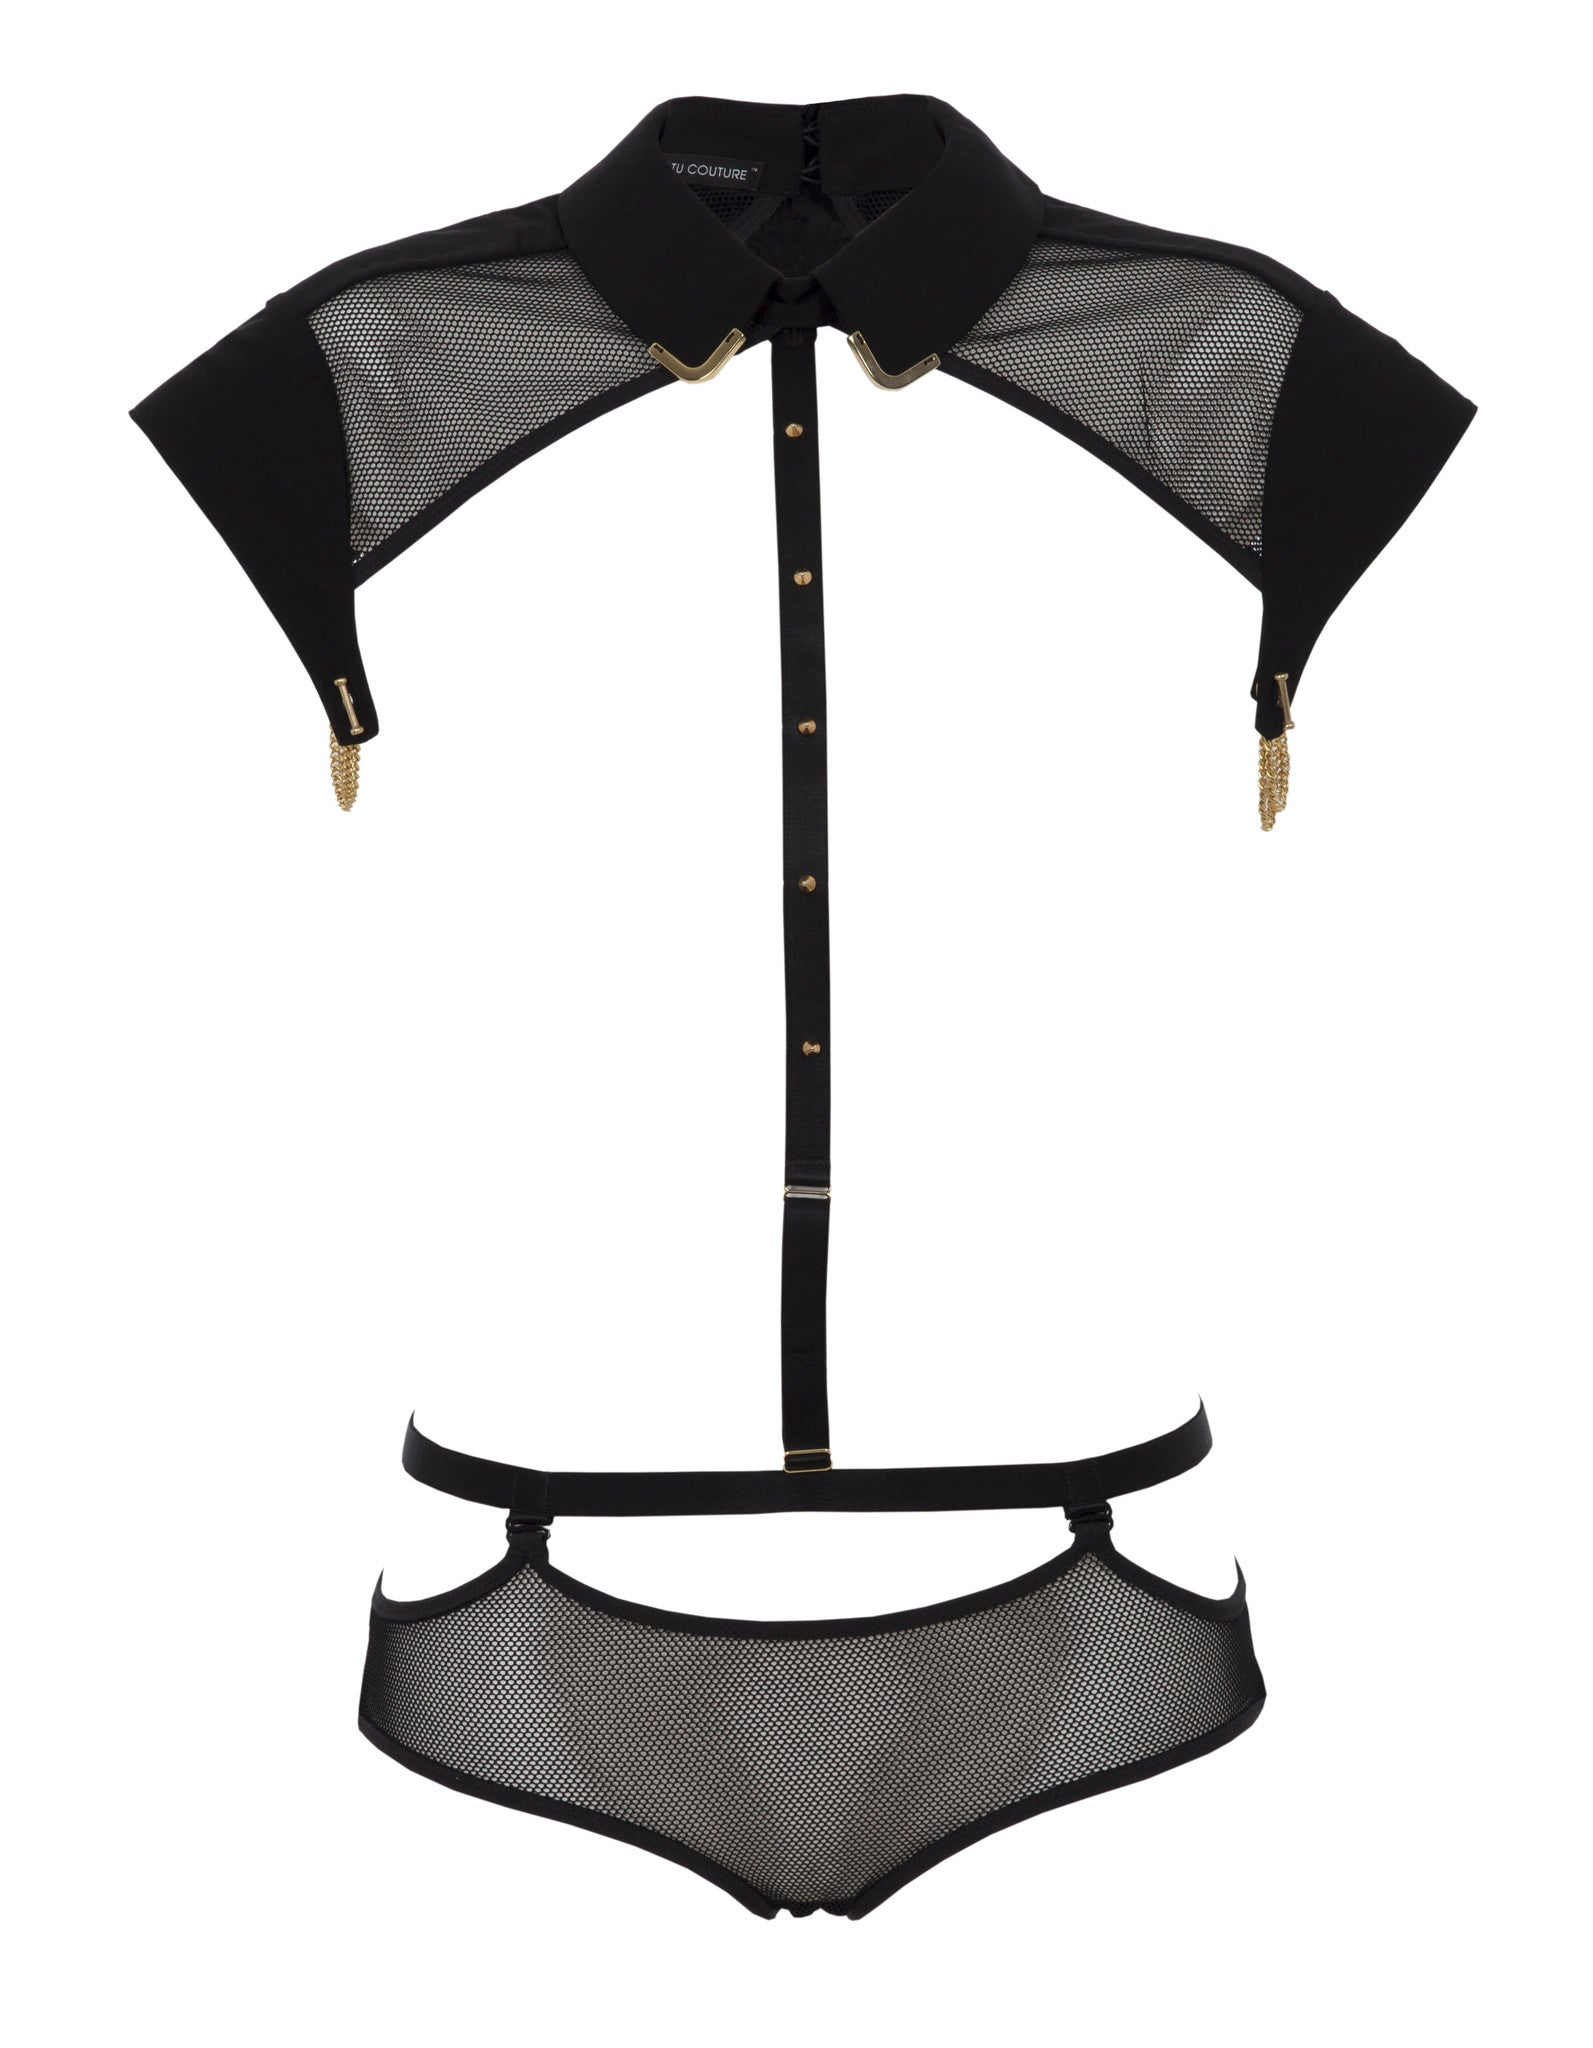 Josephine Collar with detachable knicker and suspenders (mesh)